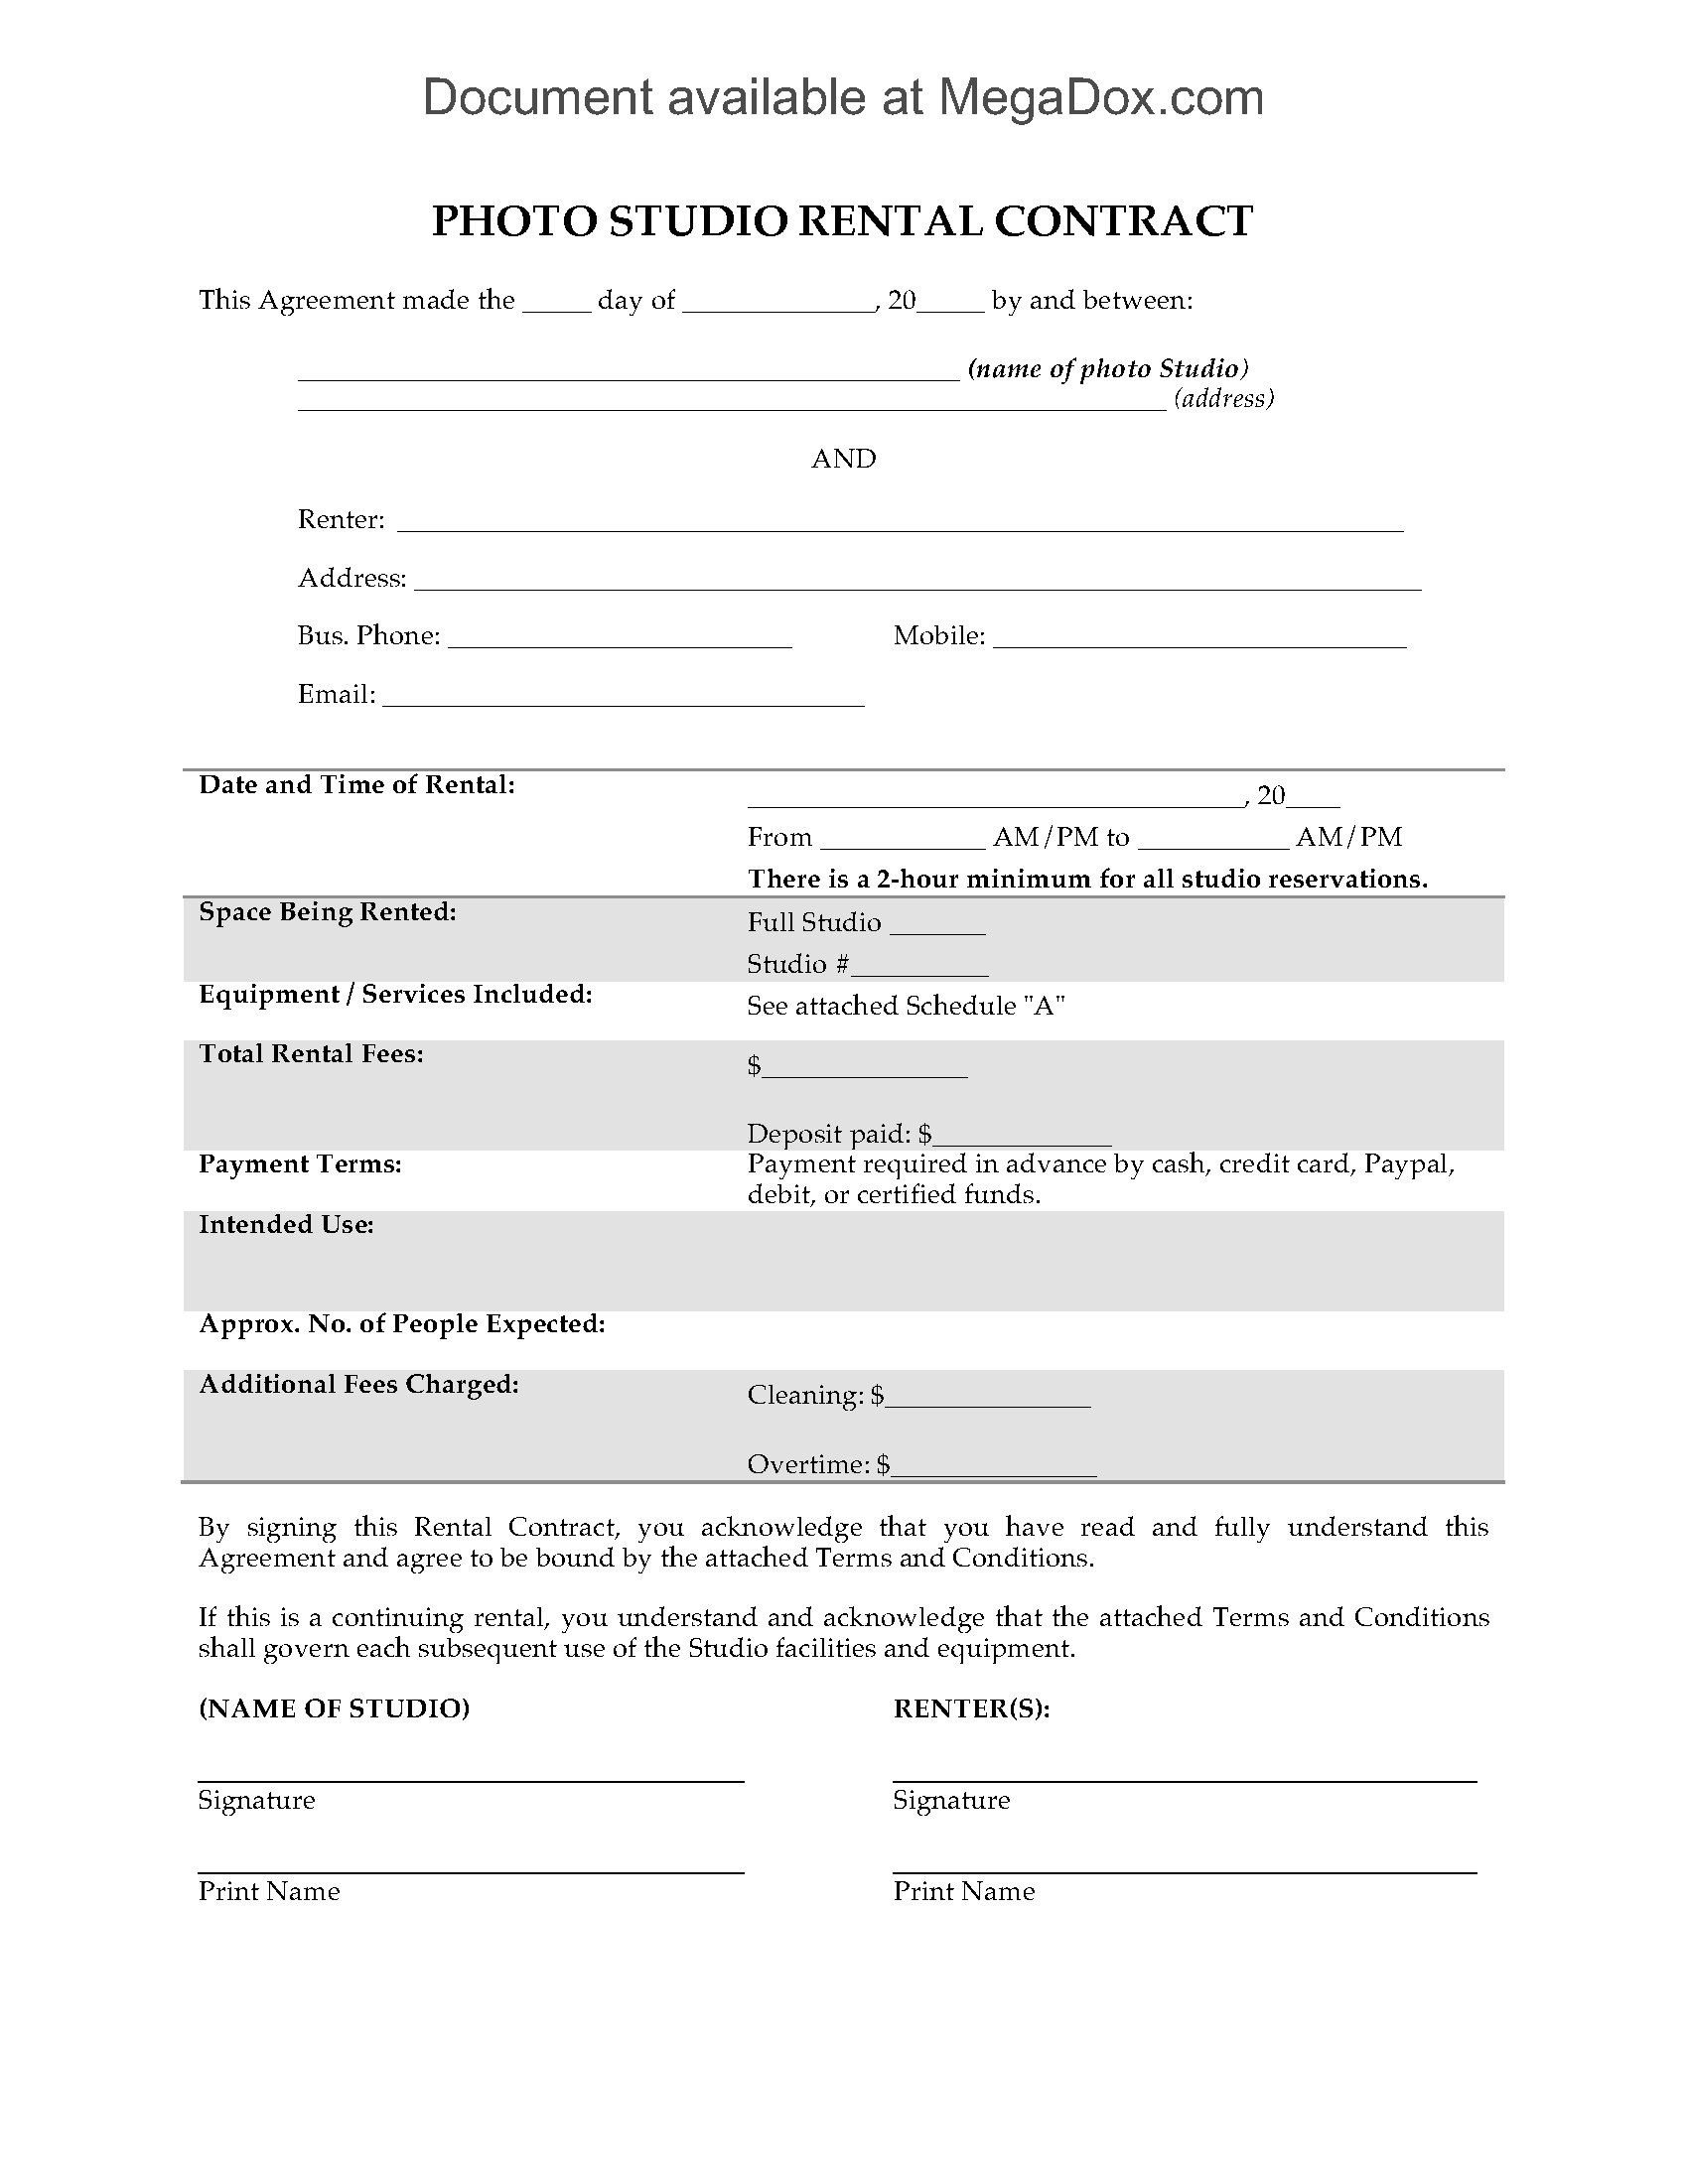 Photo Studio Rental Contract  Legal Forms And Business Templates For Camera Equipment Rental Agreement Template